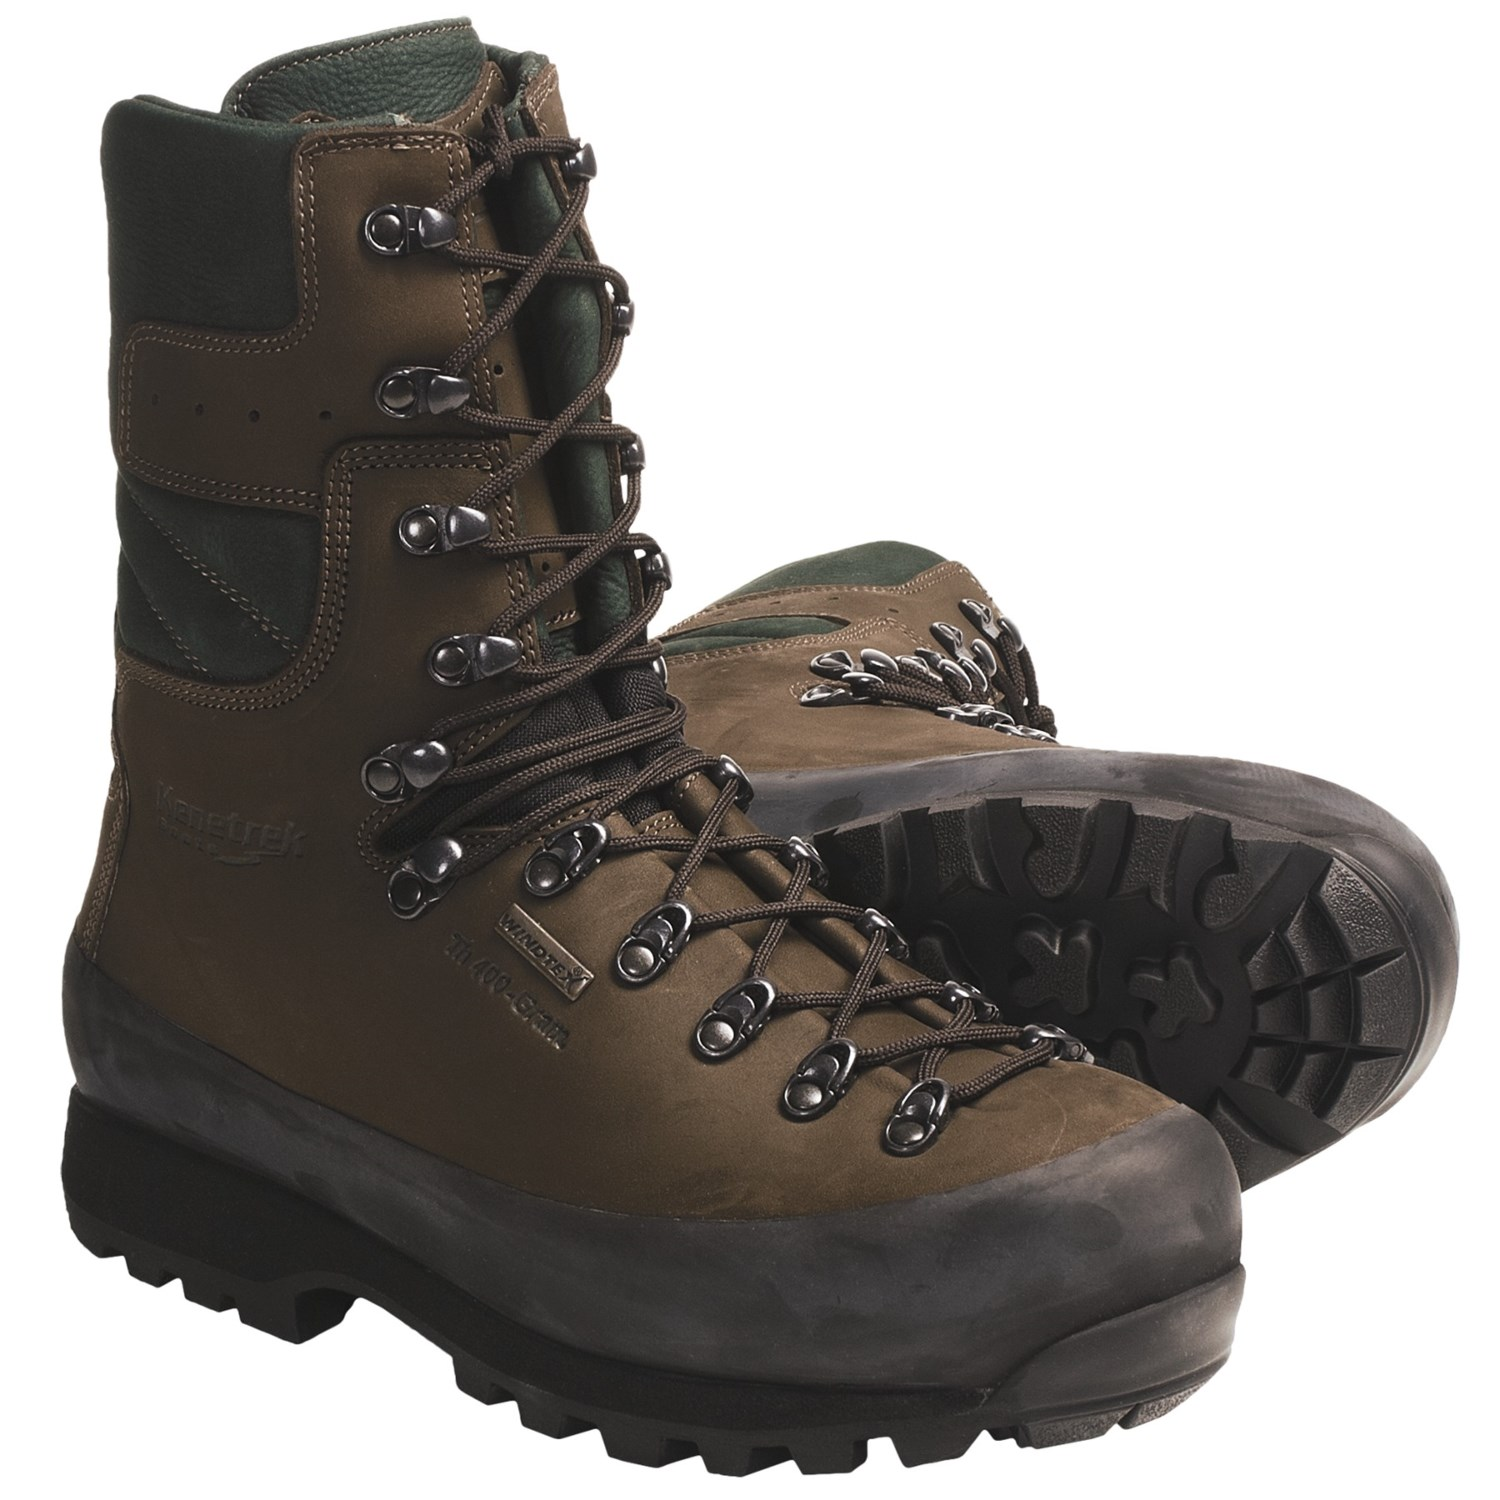 Waterproof Boots For Men EDXyqG8l